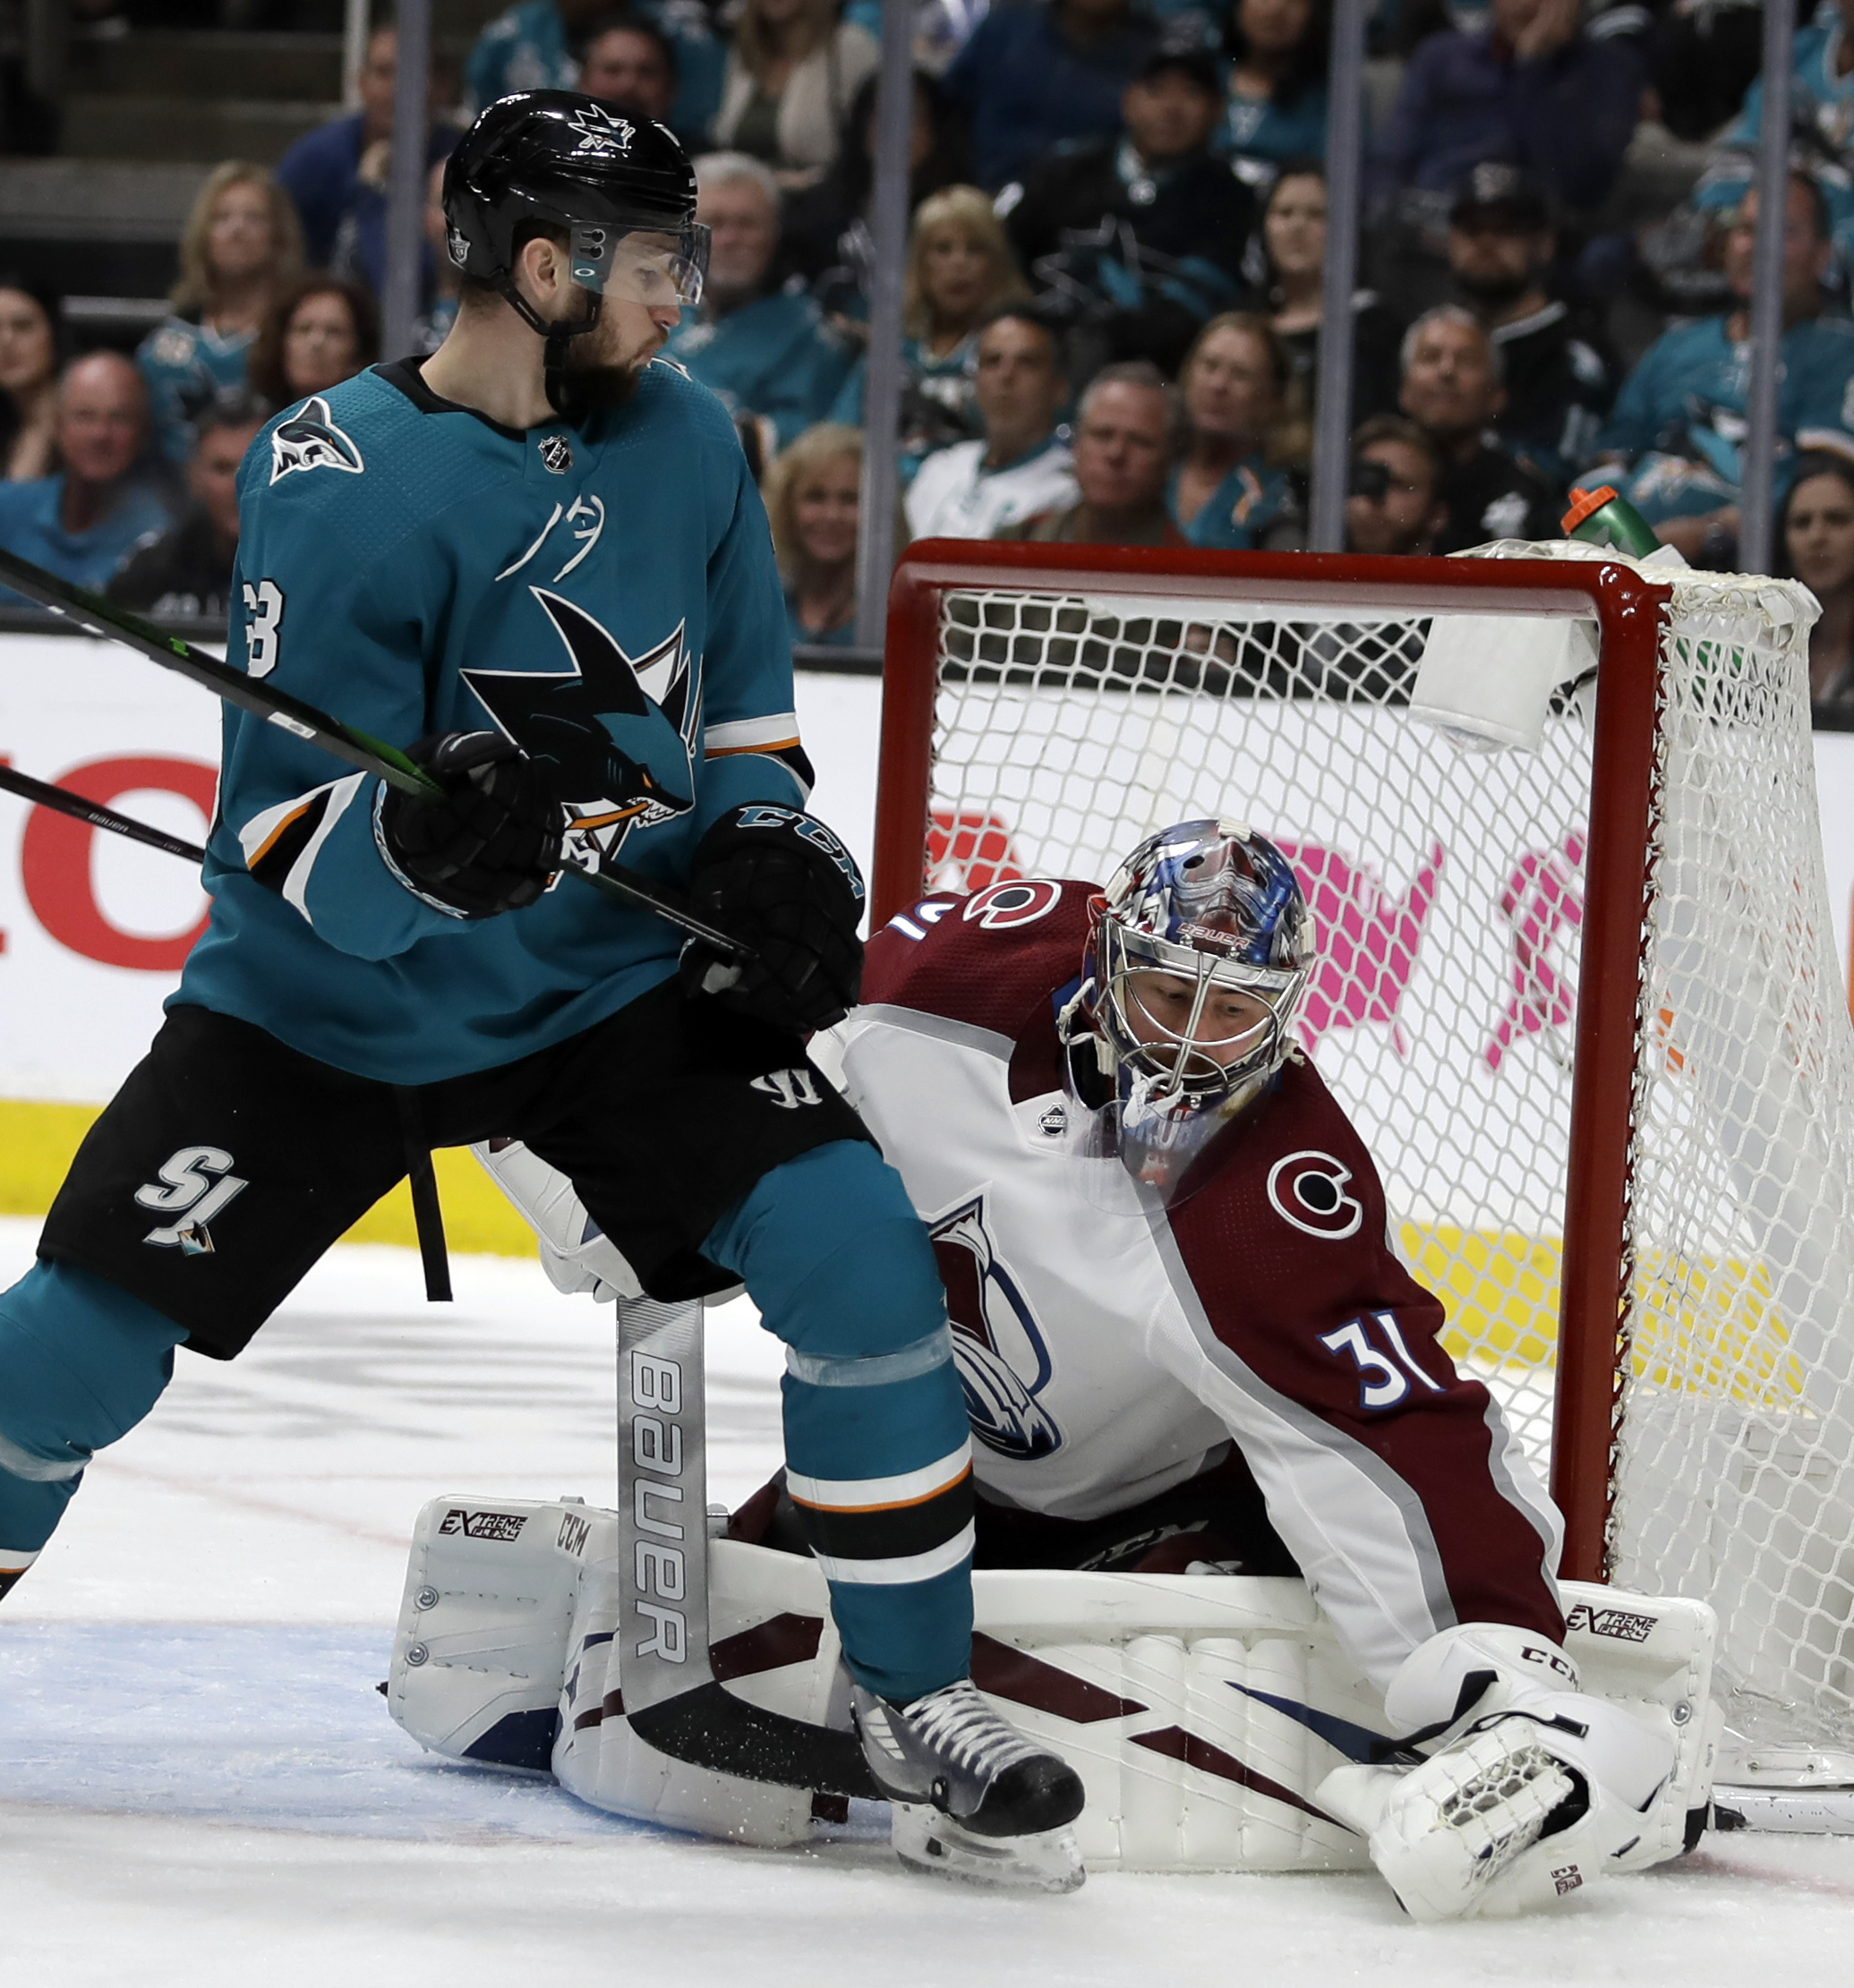 Hertl scores 2 to lead Sharks past Avalanche 2-1 in Game 5